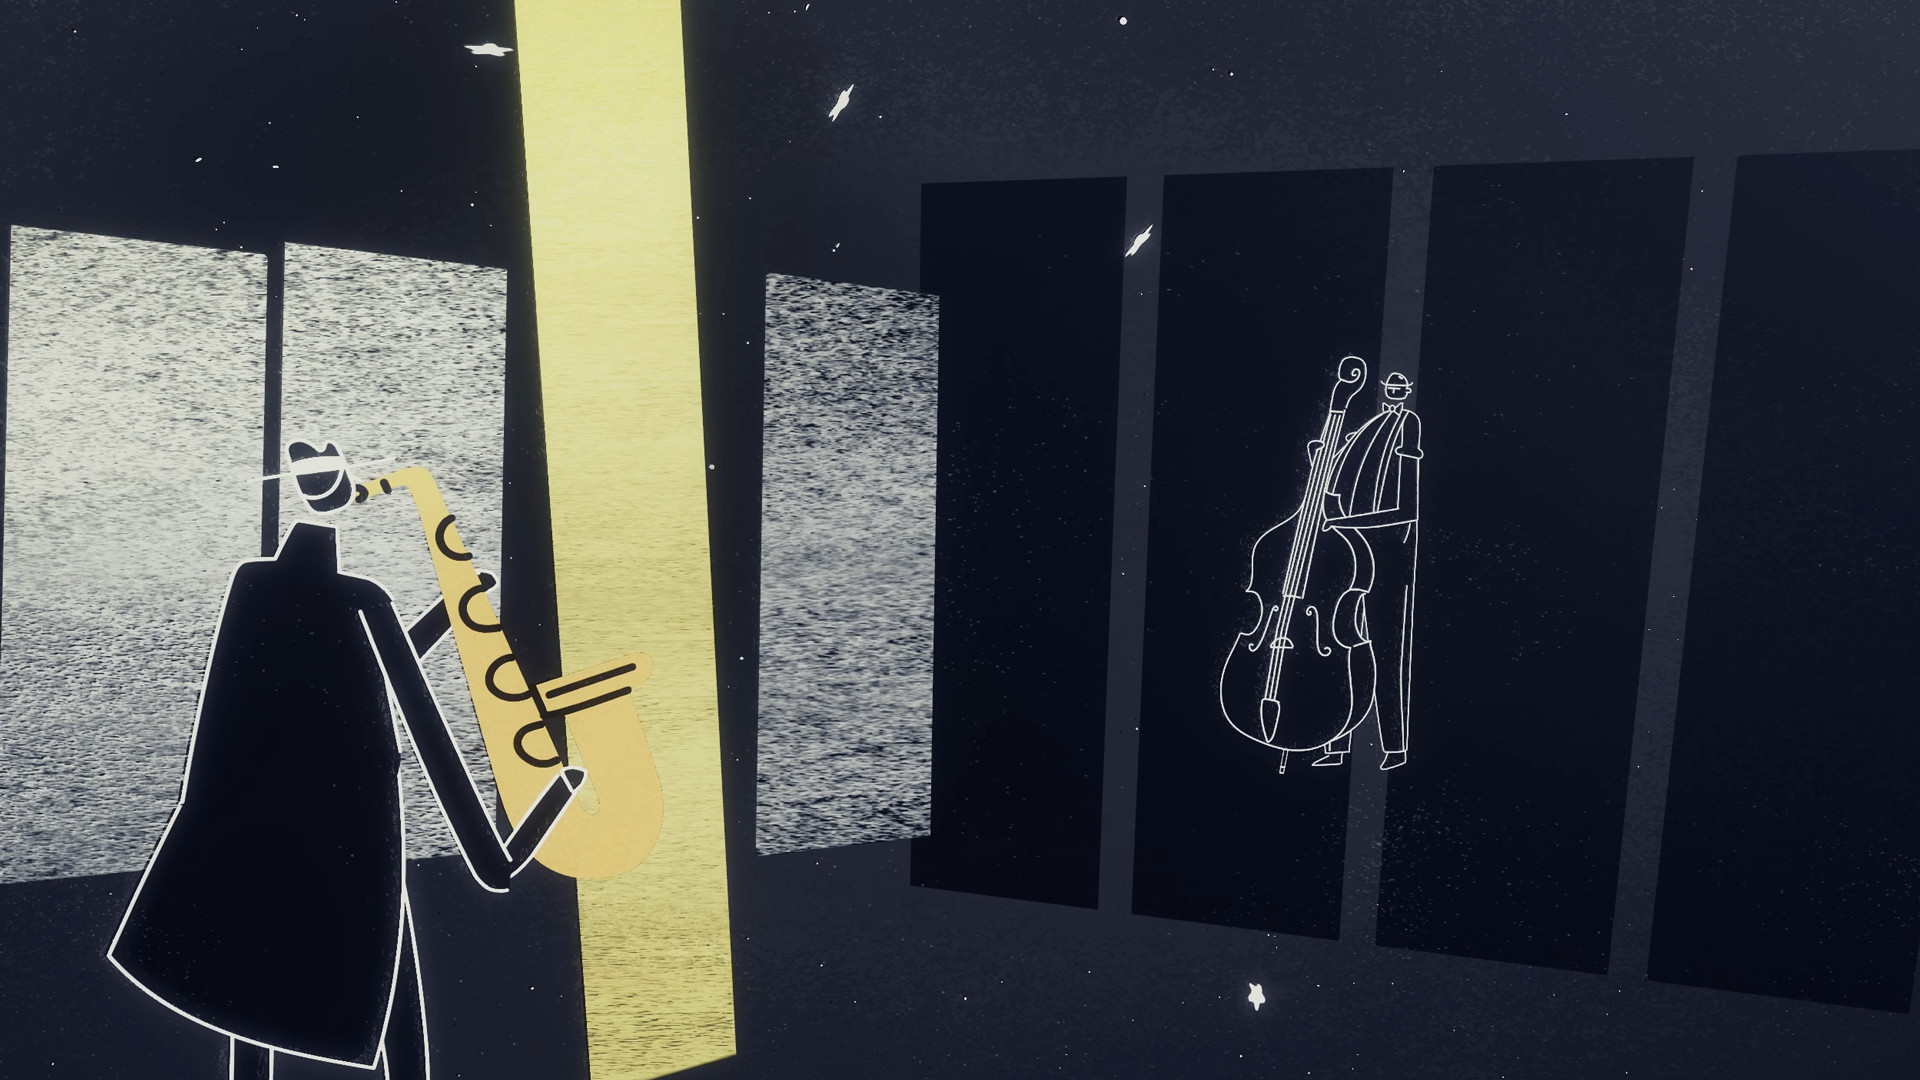 Genesis Noir's jazz-infused cosmic investigations begin later this month